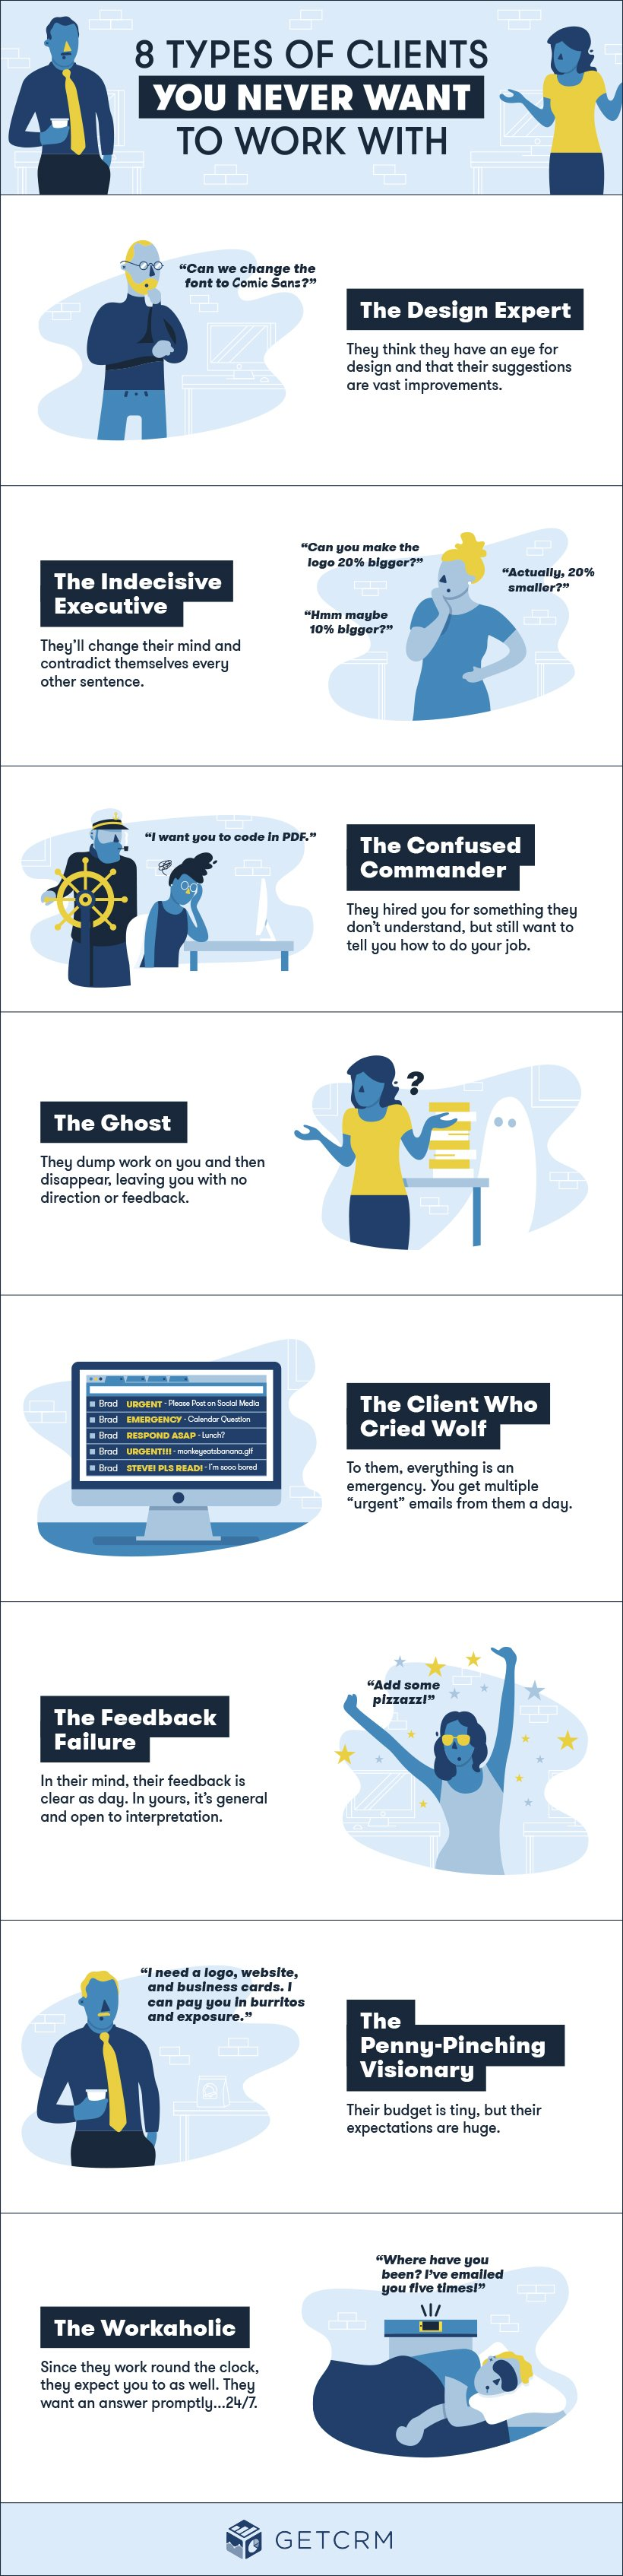 8 Types of Clients You Never Want to Work With [Infographic]